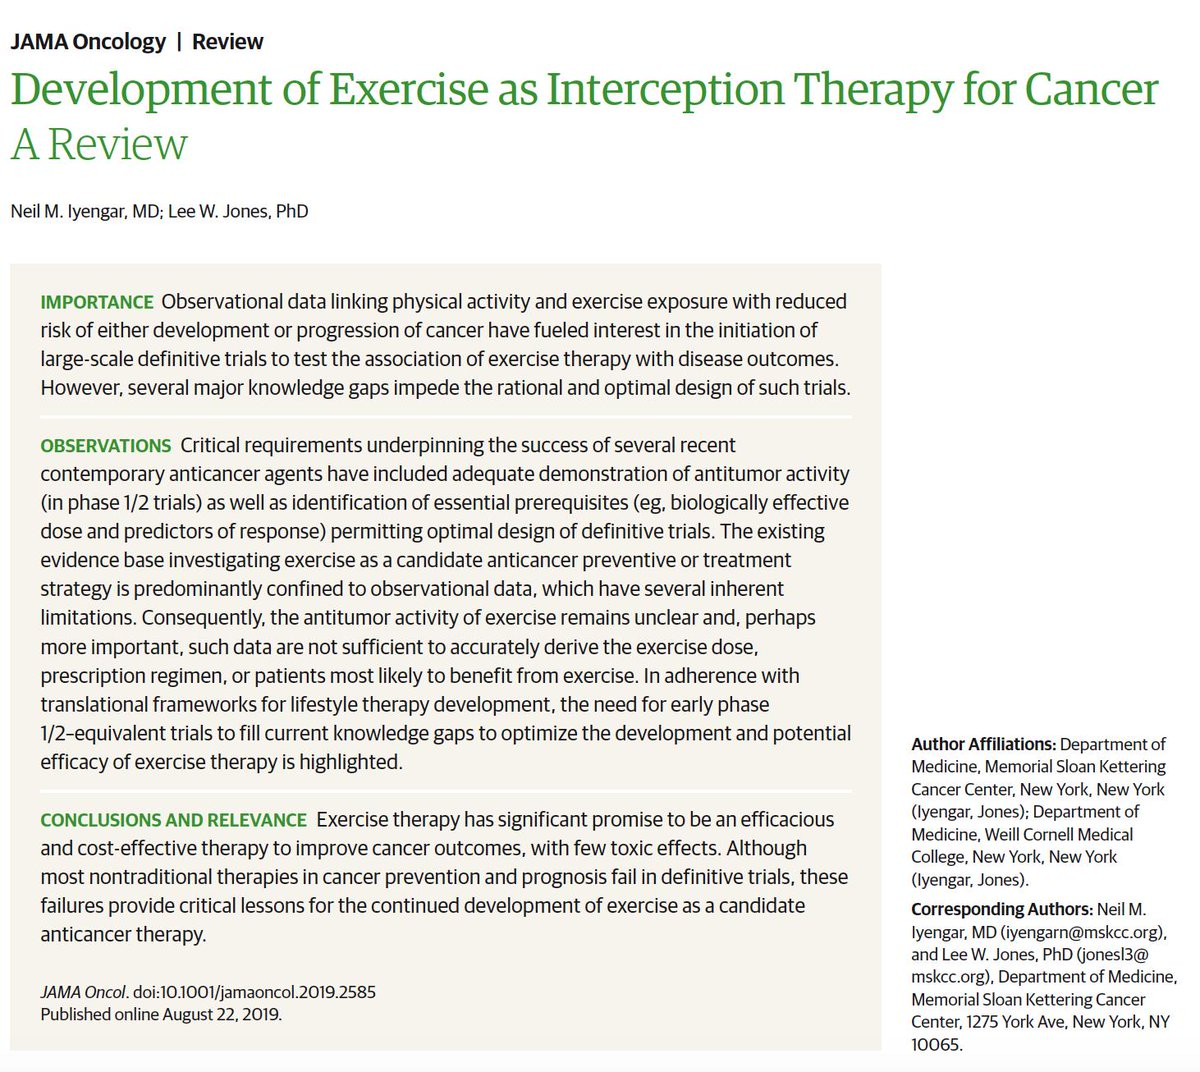 Can #exercise improve the outcomes for #cancer?  https:// jamanetwork.com/journals/jamao ncology/fullarticle/2748894  …  thoughtful review on a topic that isn't thought of enough @JAMAOnc by @sloan_kettering @Neil_Iyengar and Lee Jones<br>http://pic.twitter.com/mLYWKlsBVH